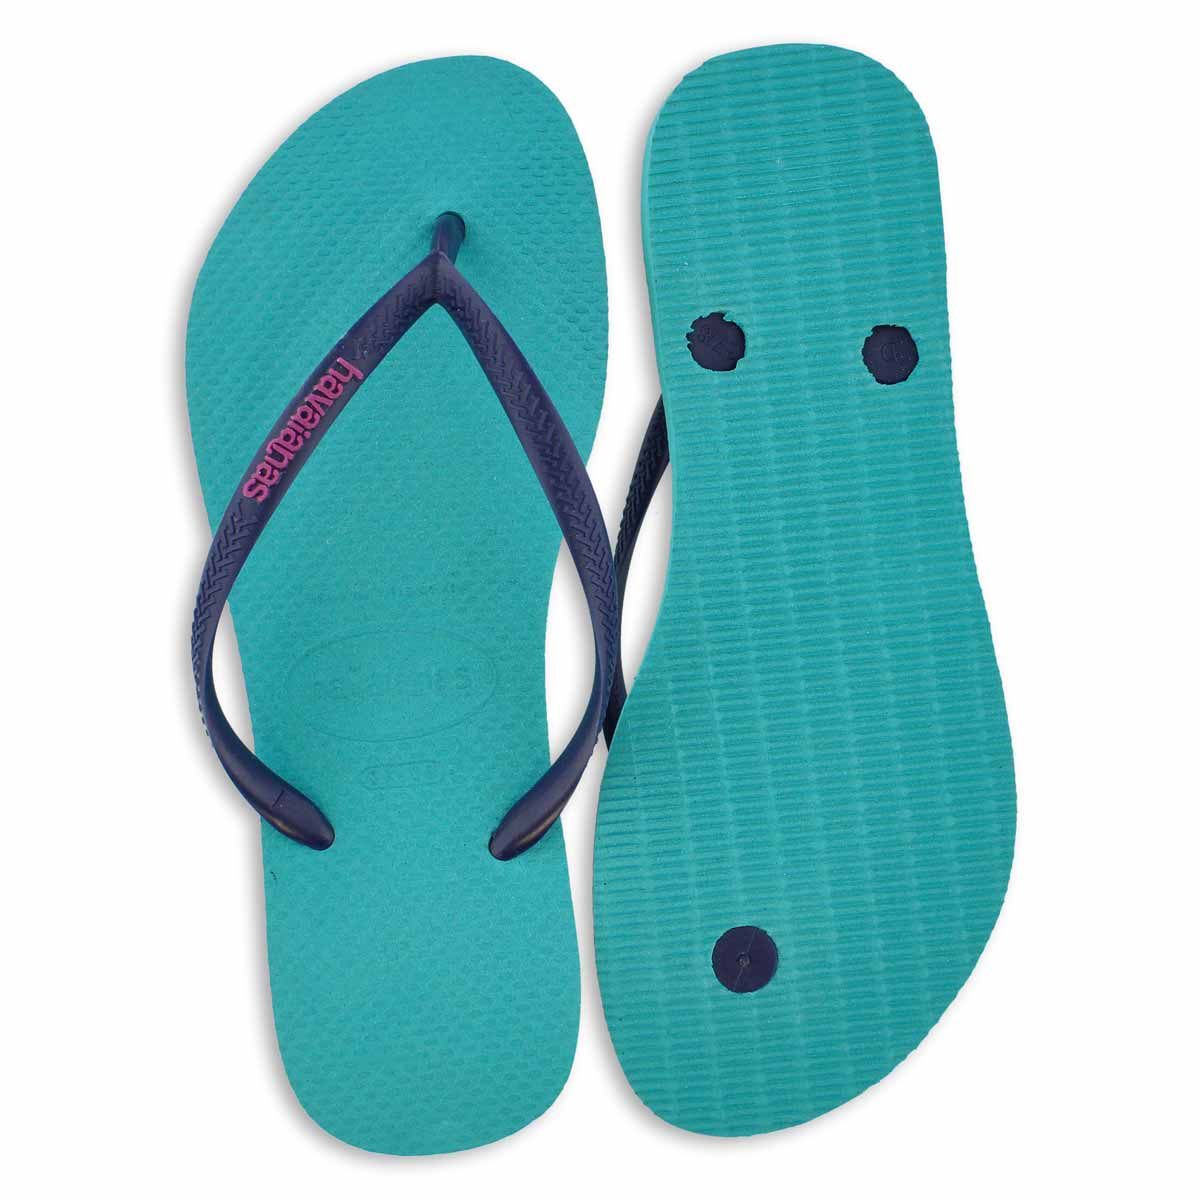 Lds Slim Logo Pop Up lake grn flip flop